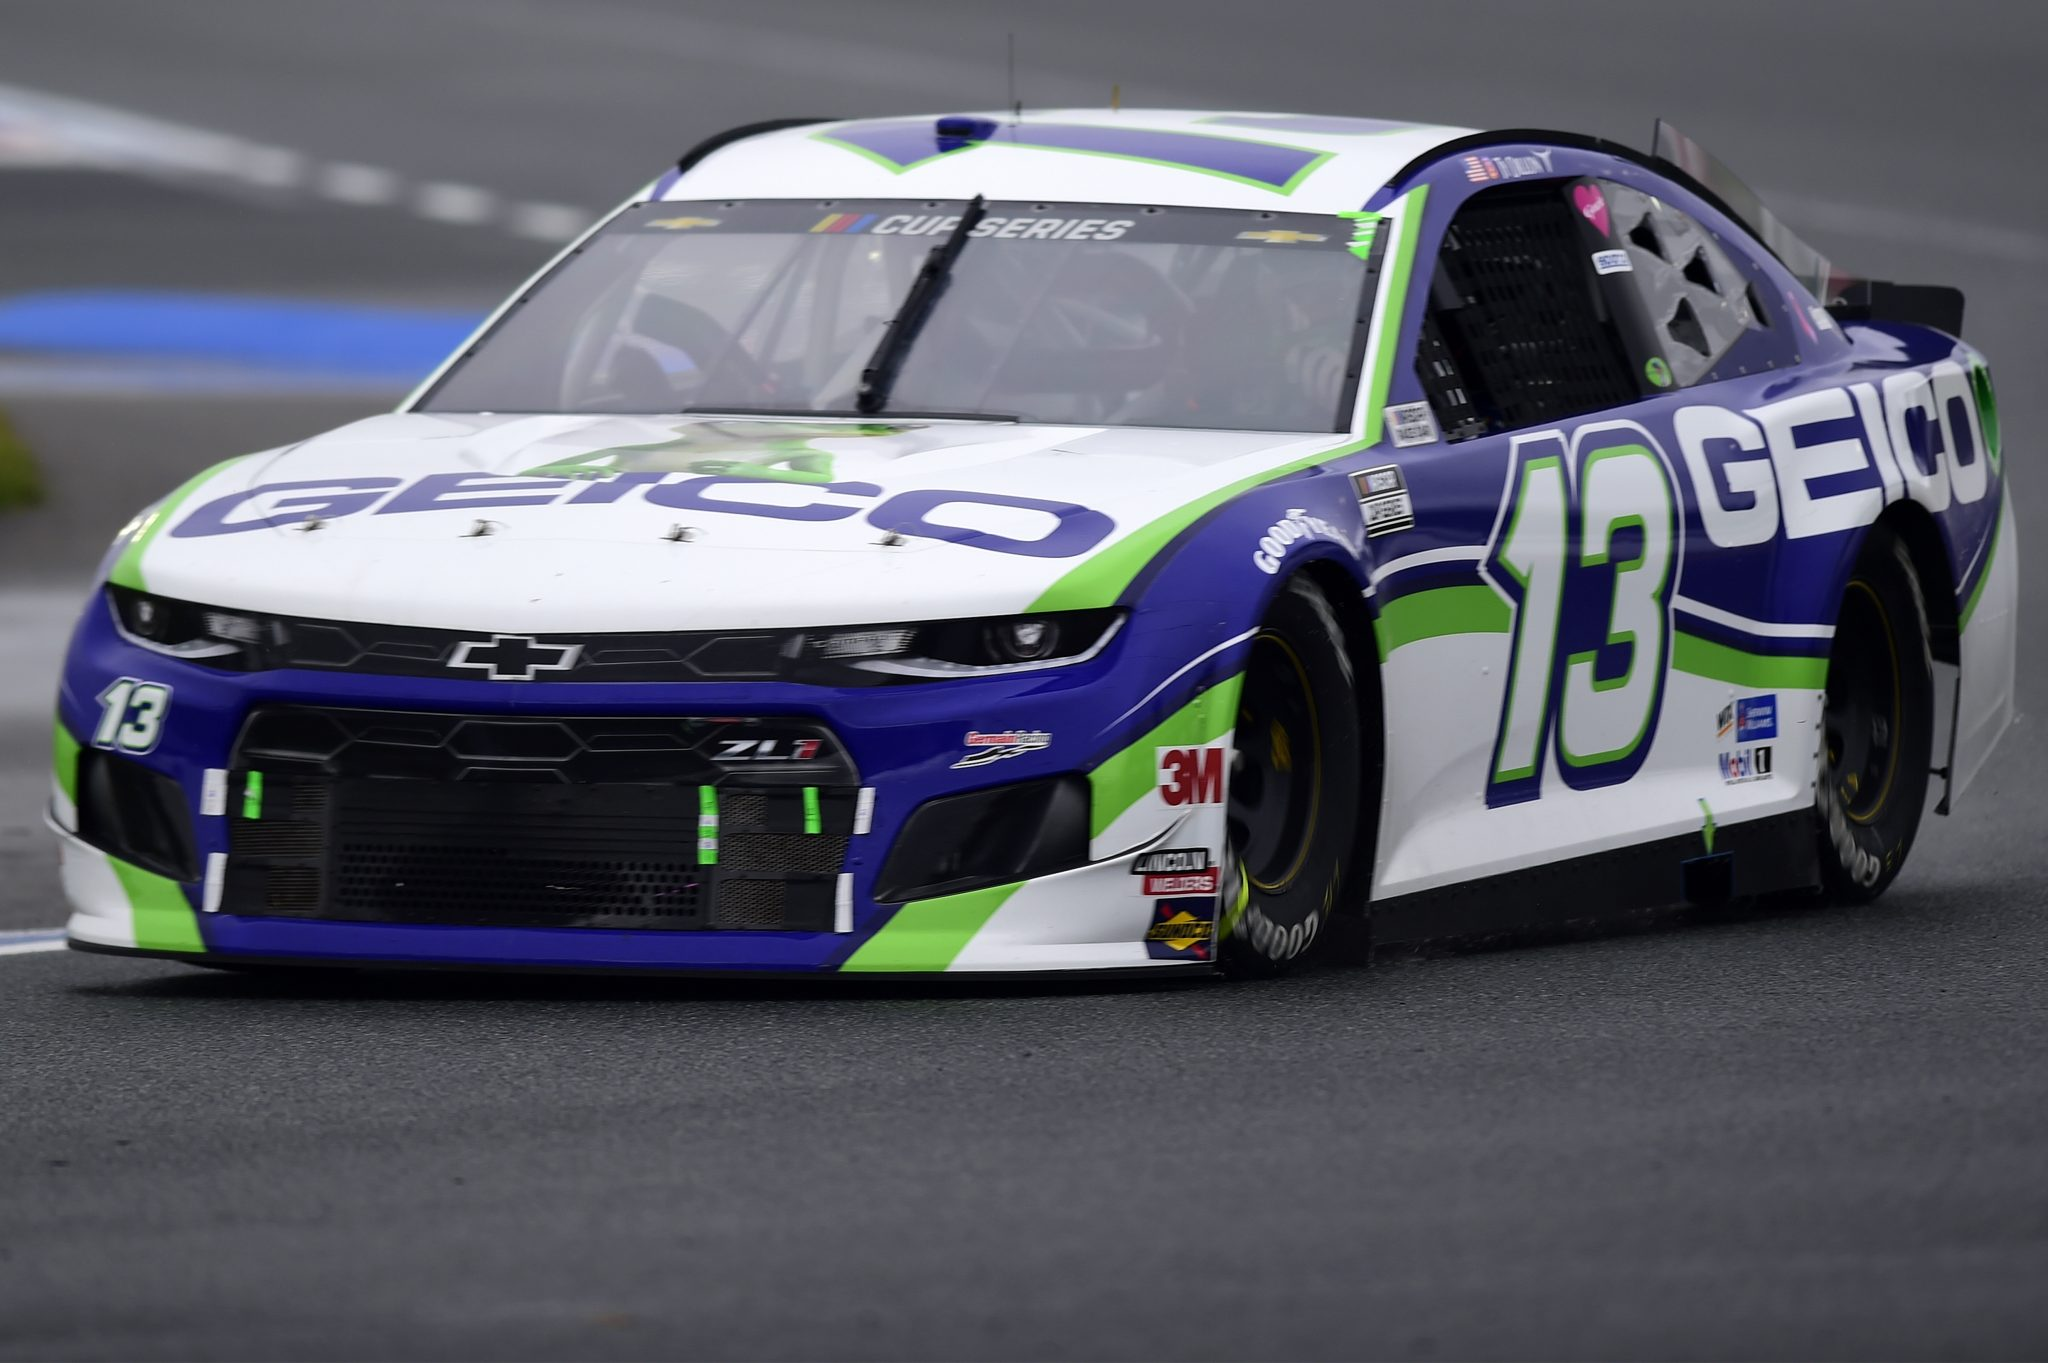 CONCORD, NORTH CAROLINA - OCTOBER 11: Ty Dillon, driver of the #13 GEICO Chevrolet, drives during the NASCAR Cup Series Bank of America ROVAL 400 at Charlotte Motor Speedway on October 11, 2020 in Concord, North Carolina. (Photo by Jared C. Tilton/Getty Images) | Getty Images